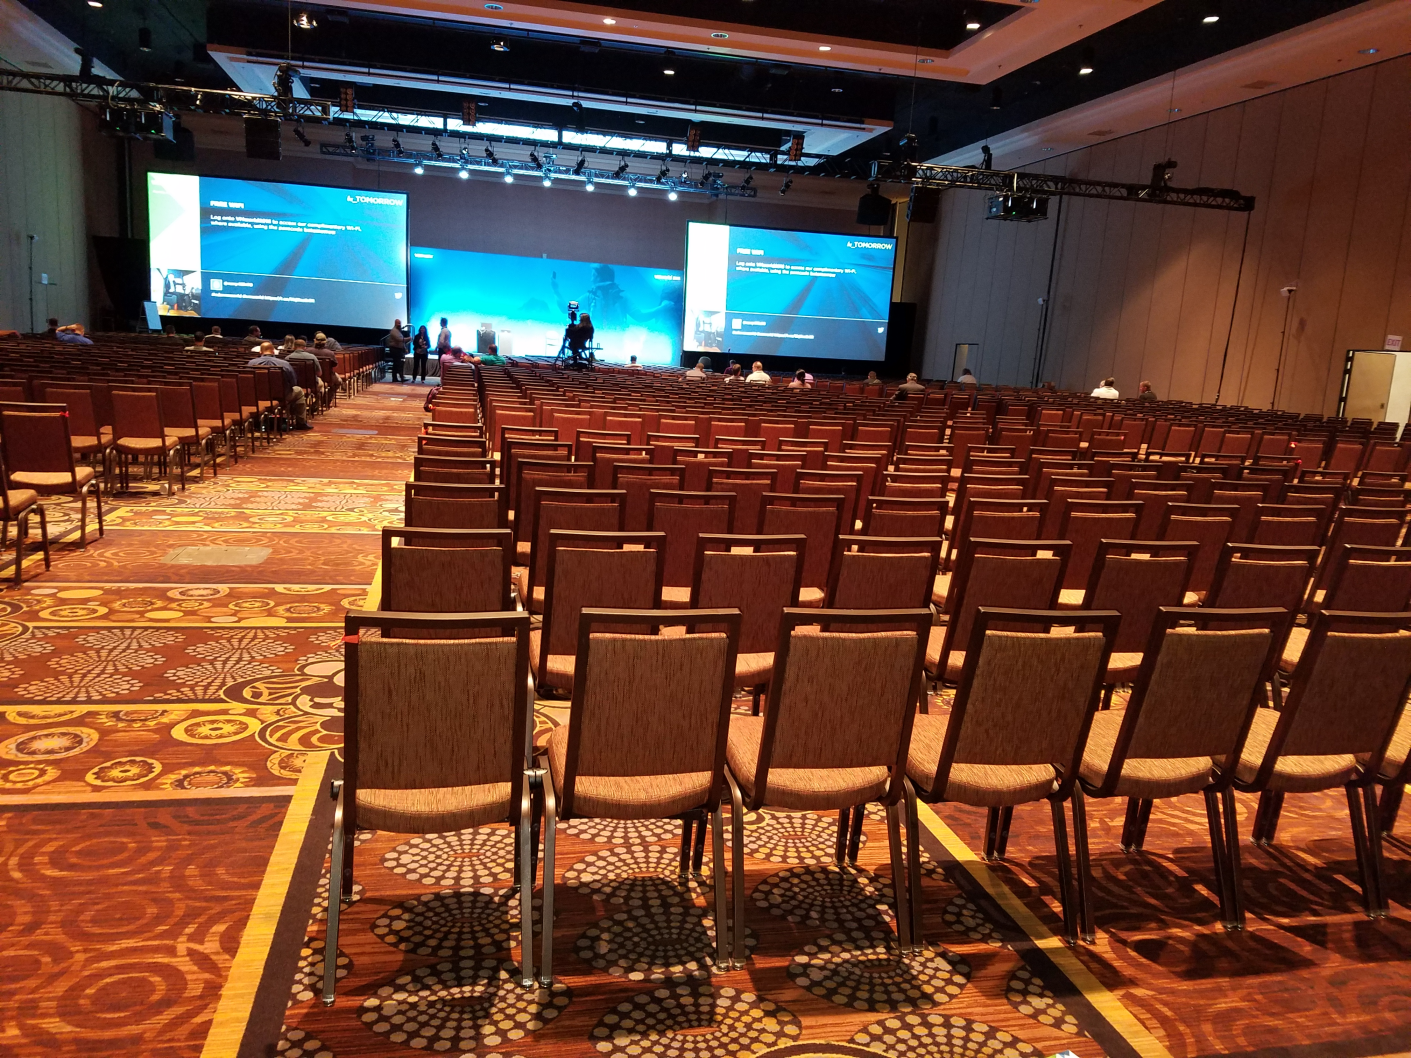 Checking out my room for my VVols breakout session, damn thats big room